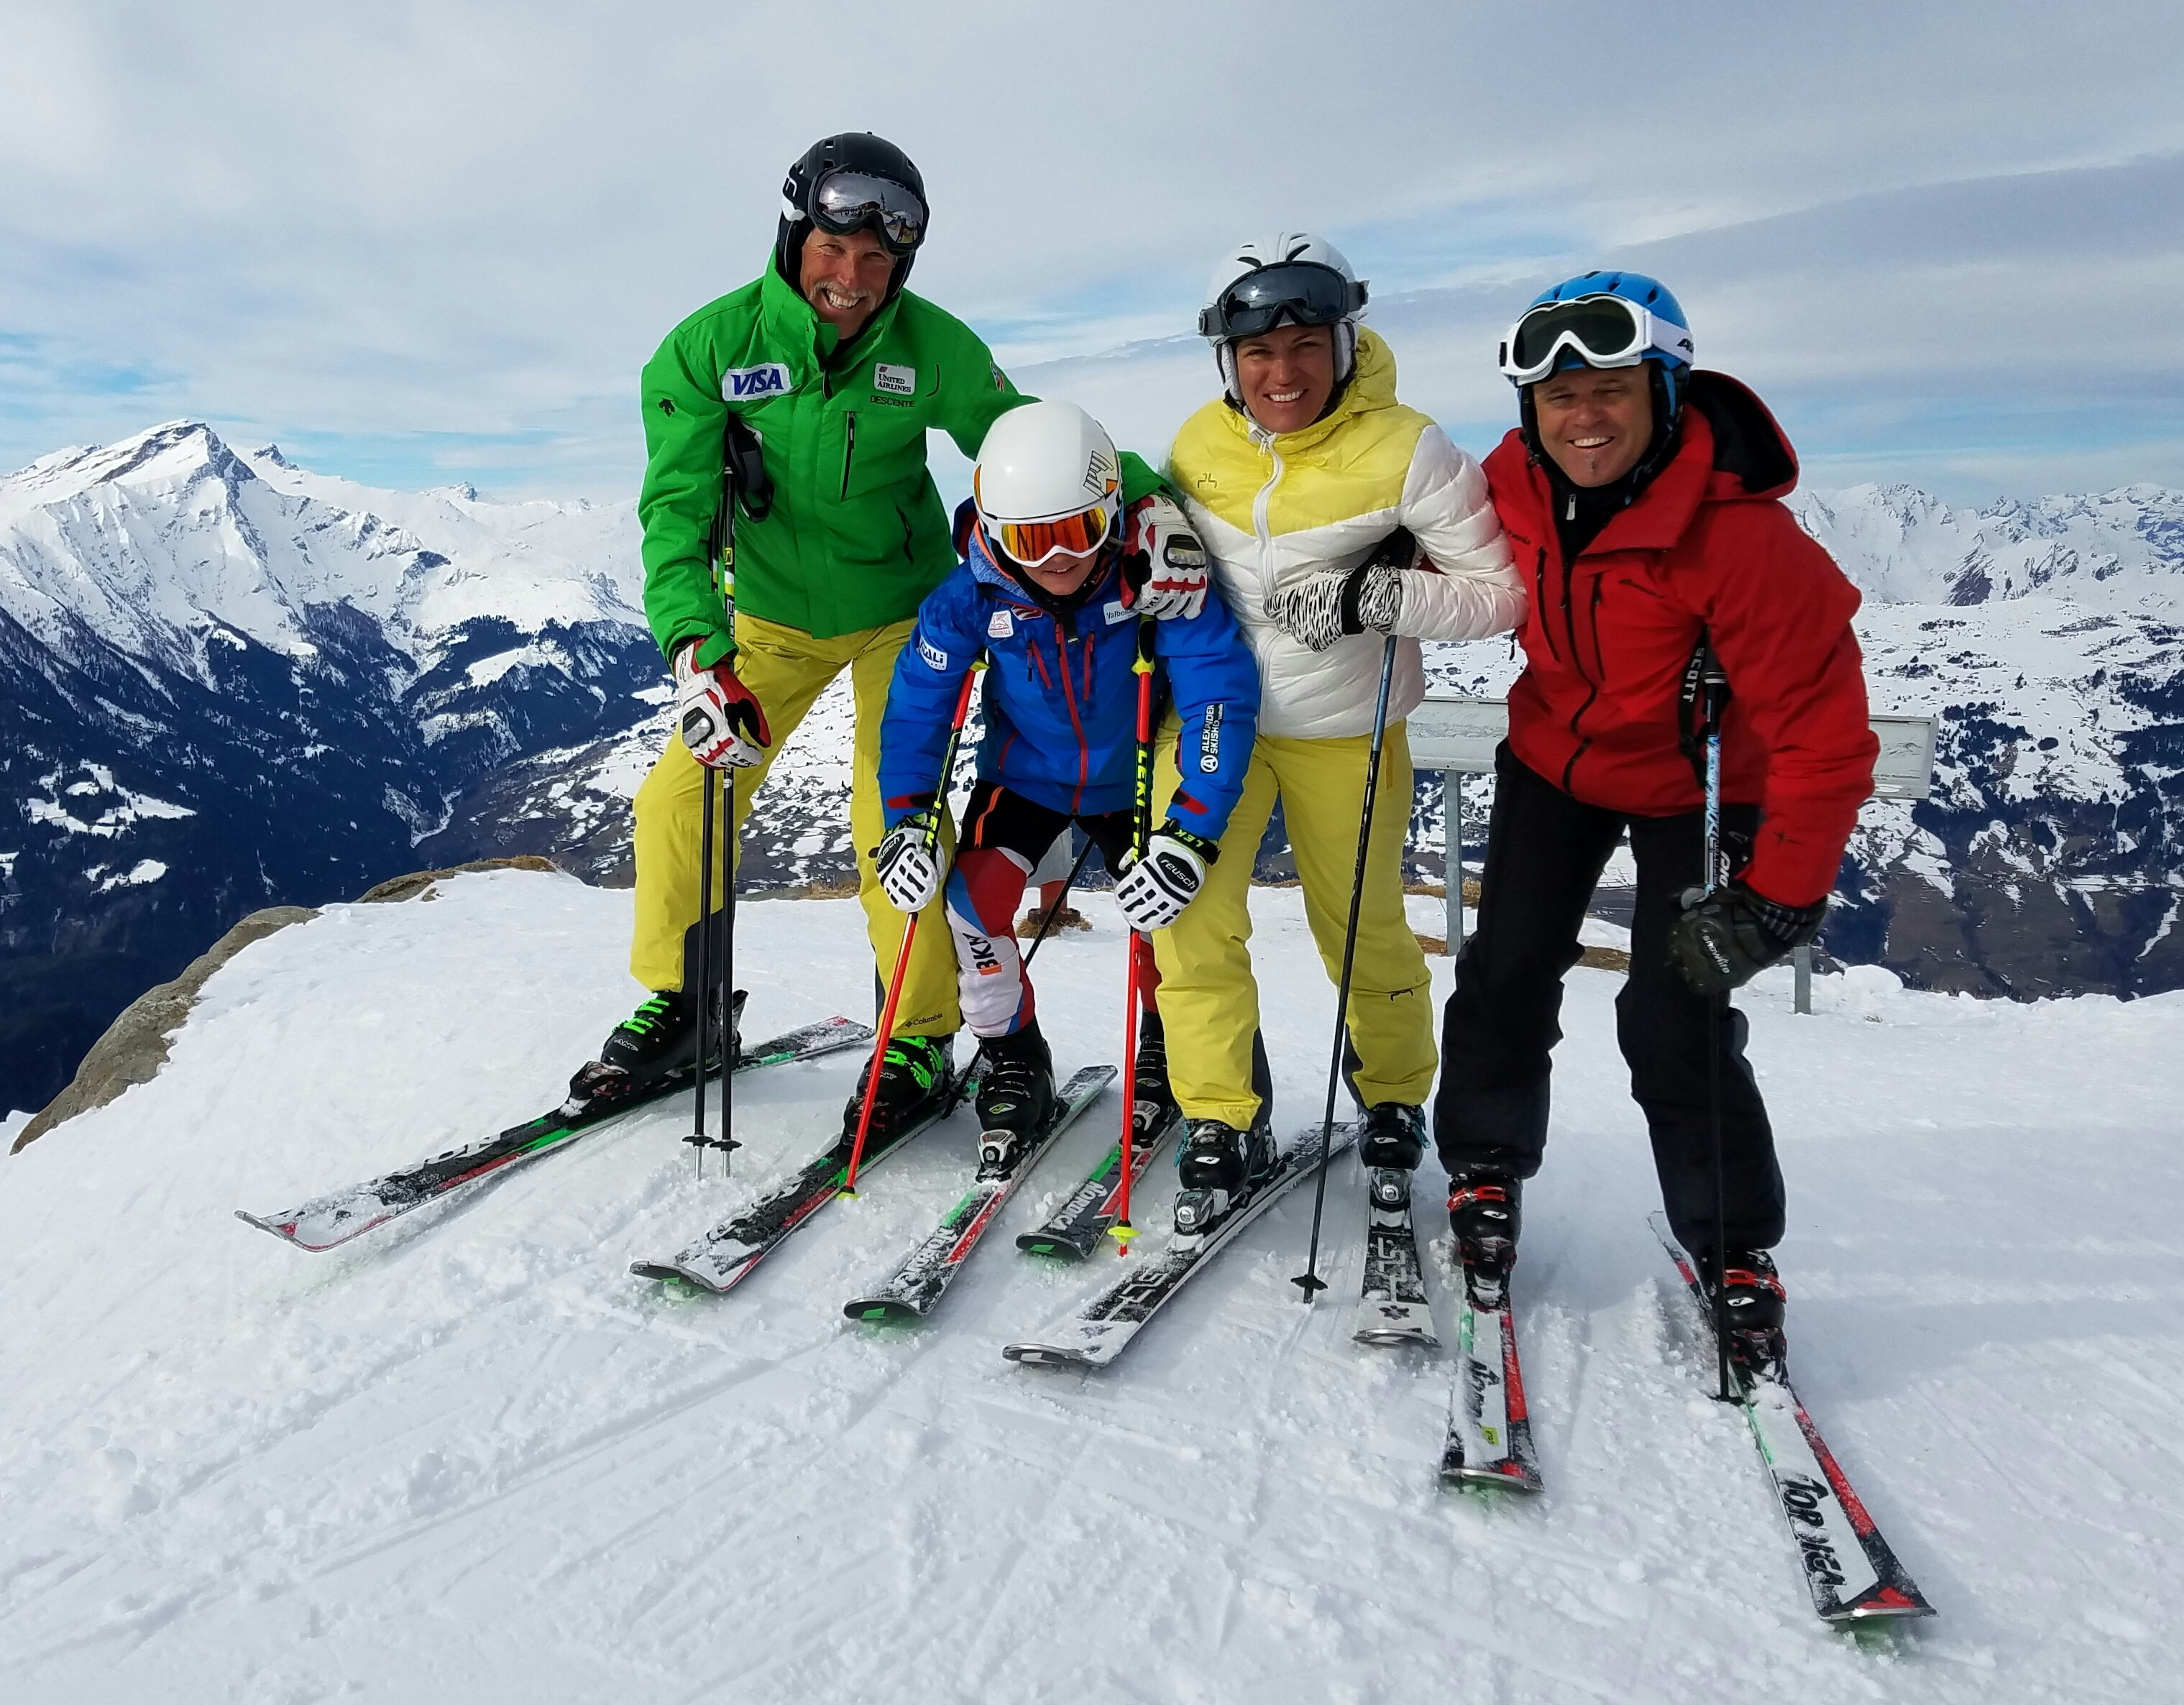 Ski tour photo - Erwin with clients on top of snowy mountain